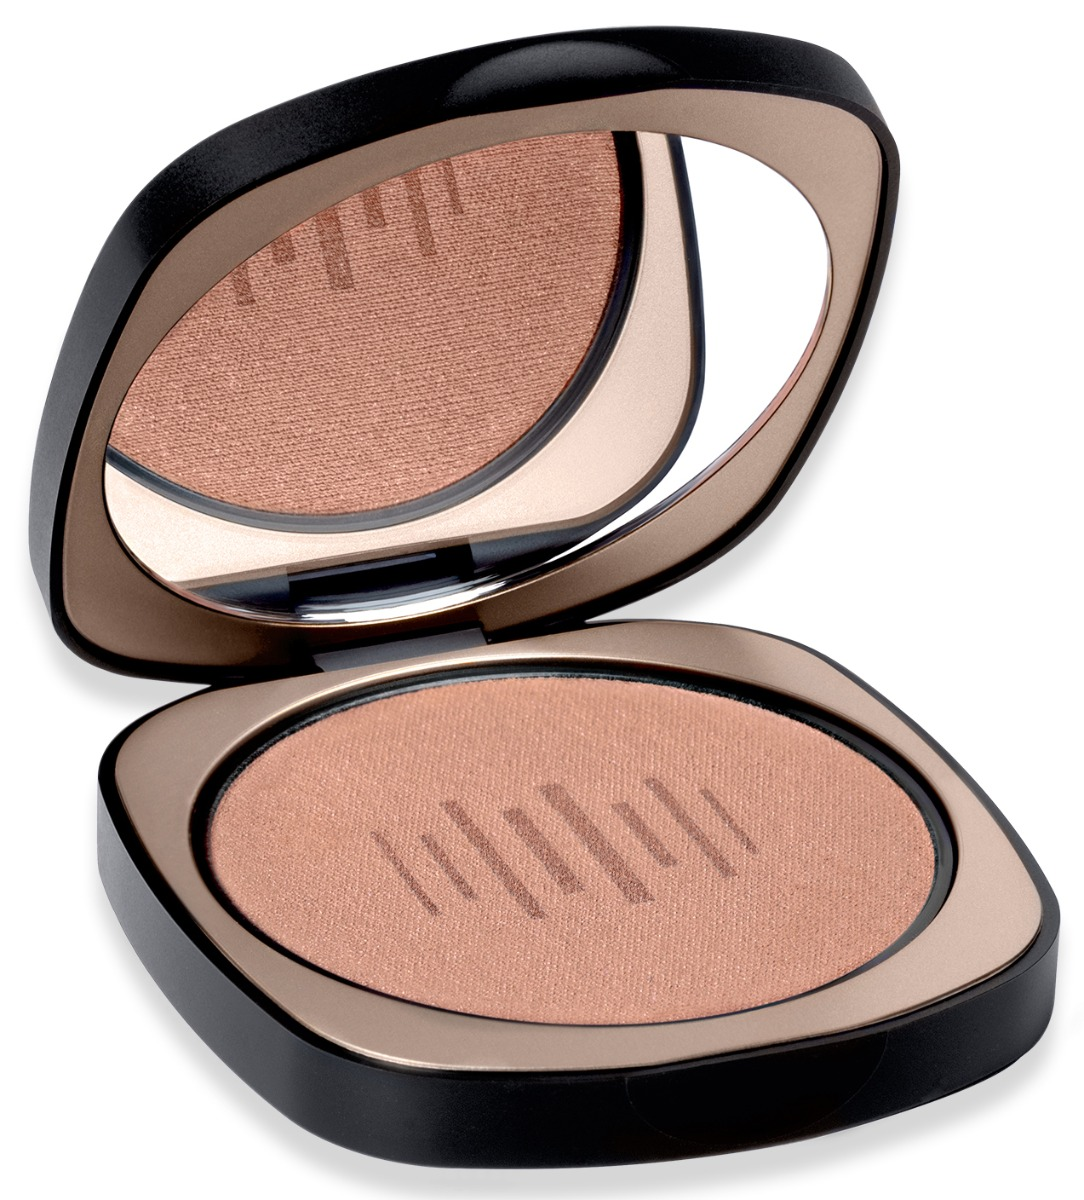 Bronzer - Suitable for Wear in Hot Weather